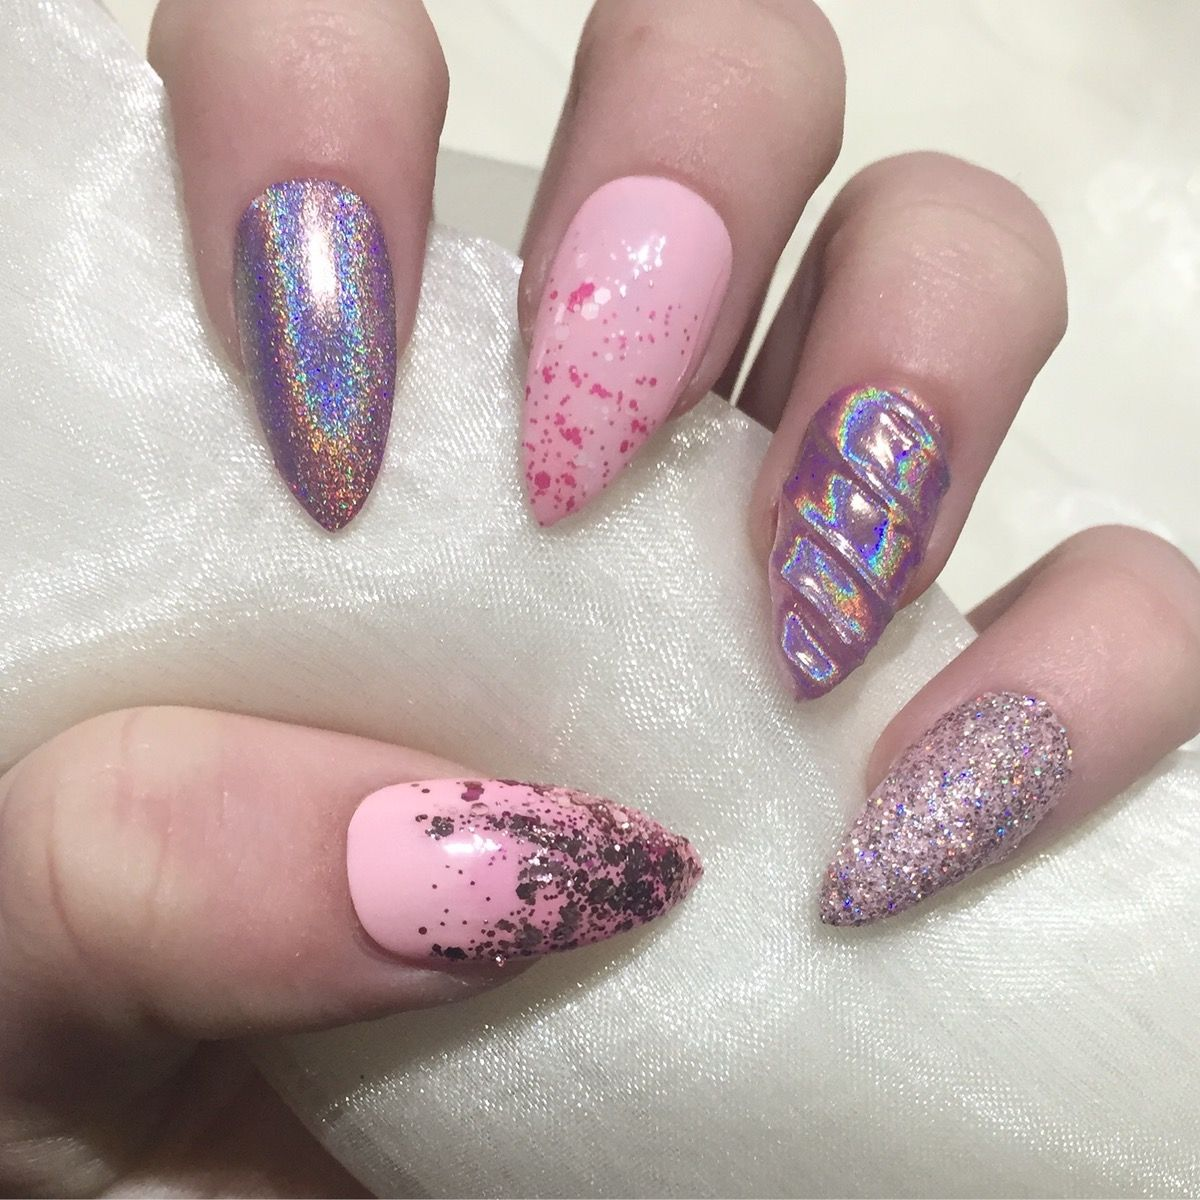 Handmade false nails for any occasion. The perfect instant manicure ...